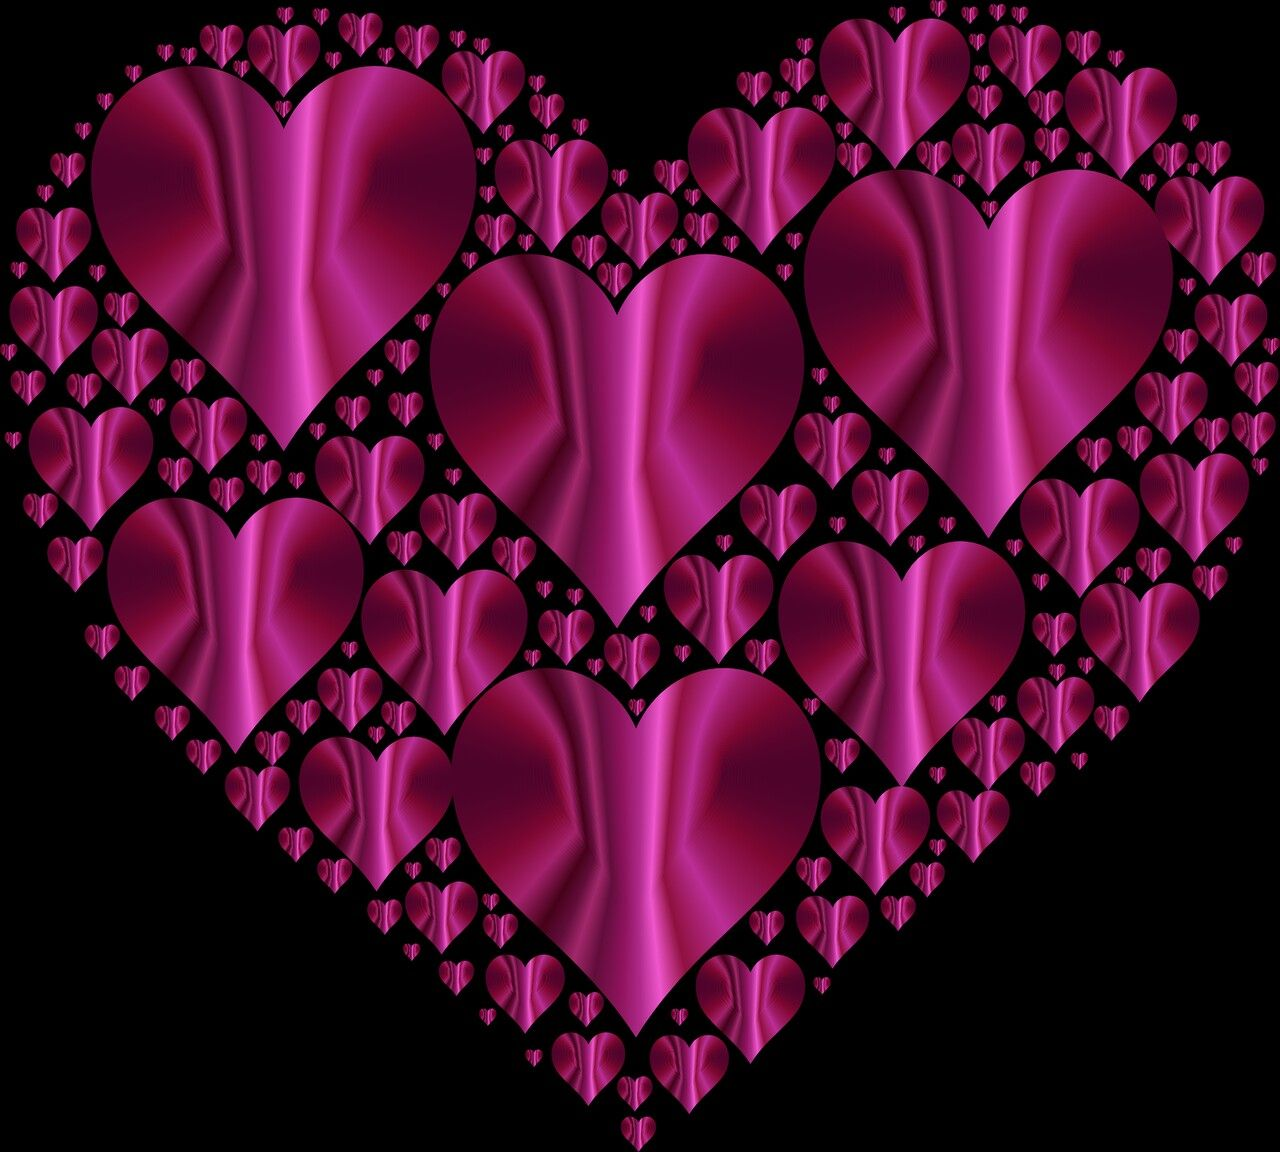 Pin by sherree stangle on heart images heart wallpaper